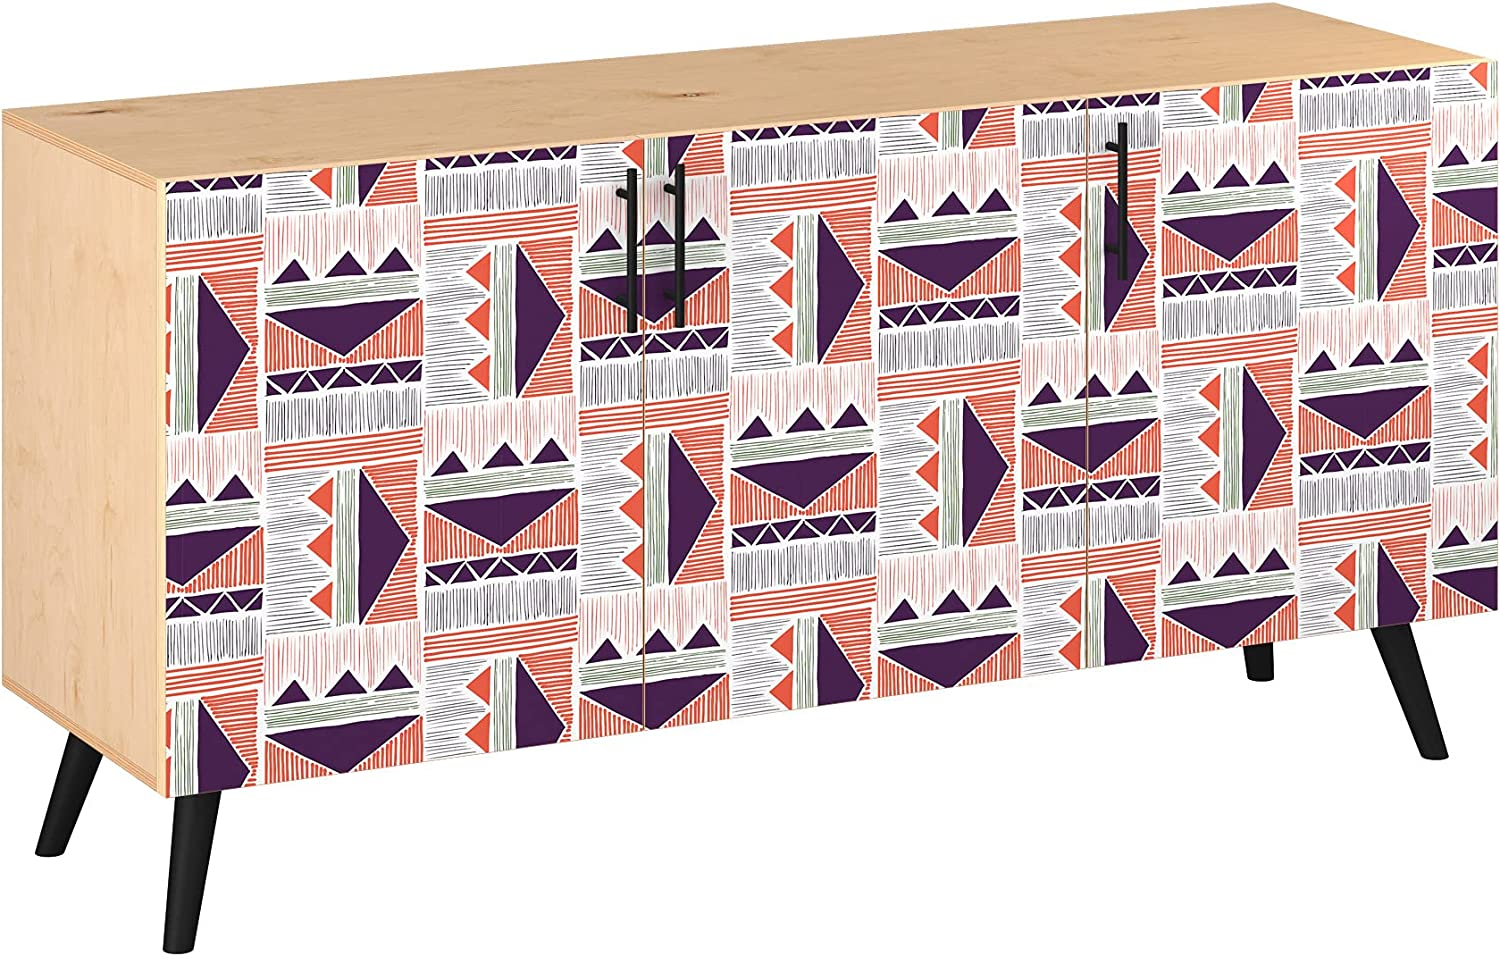 Poppy Sideboard - Natural Velma Design Colors 5 Sty Superior in Max 58% OFF Base 11